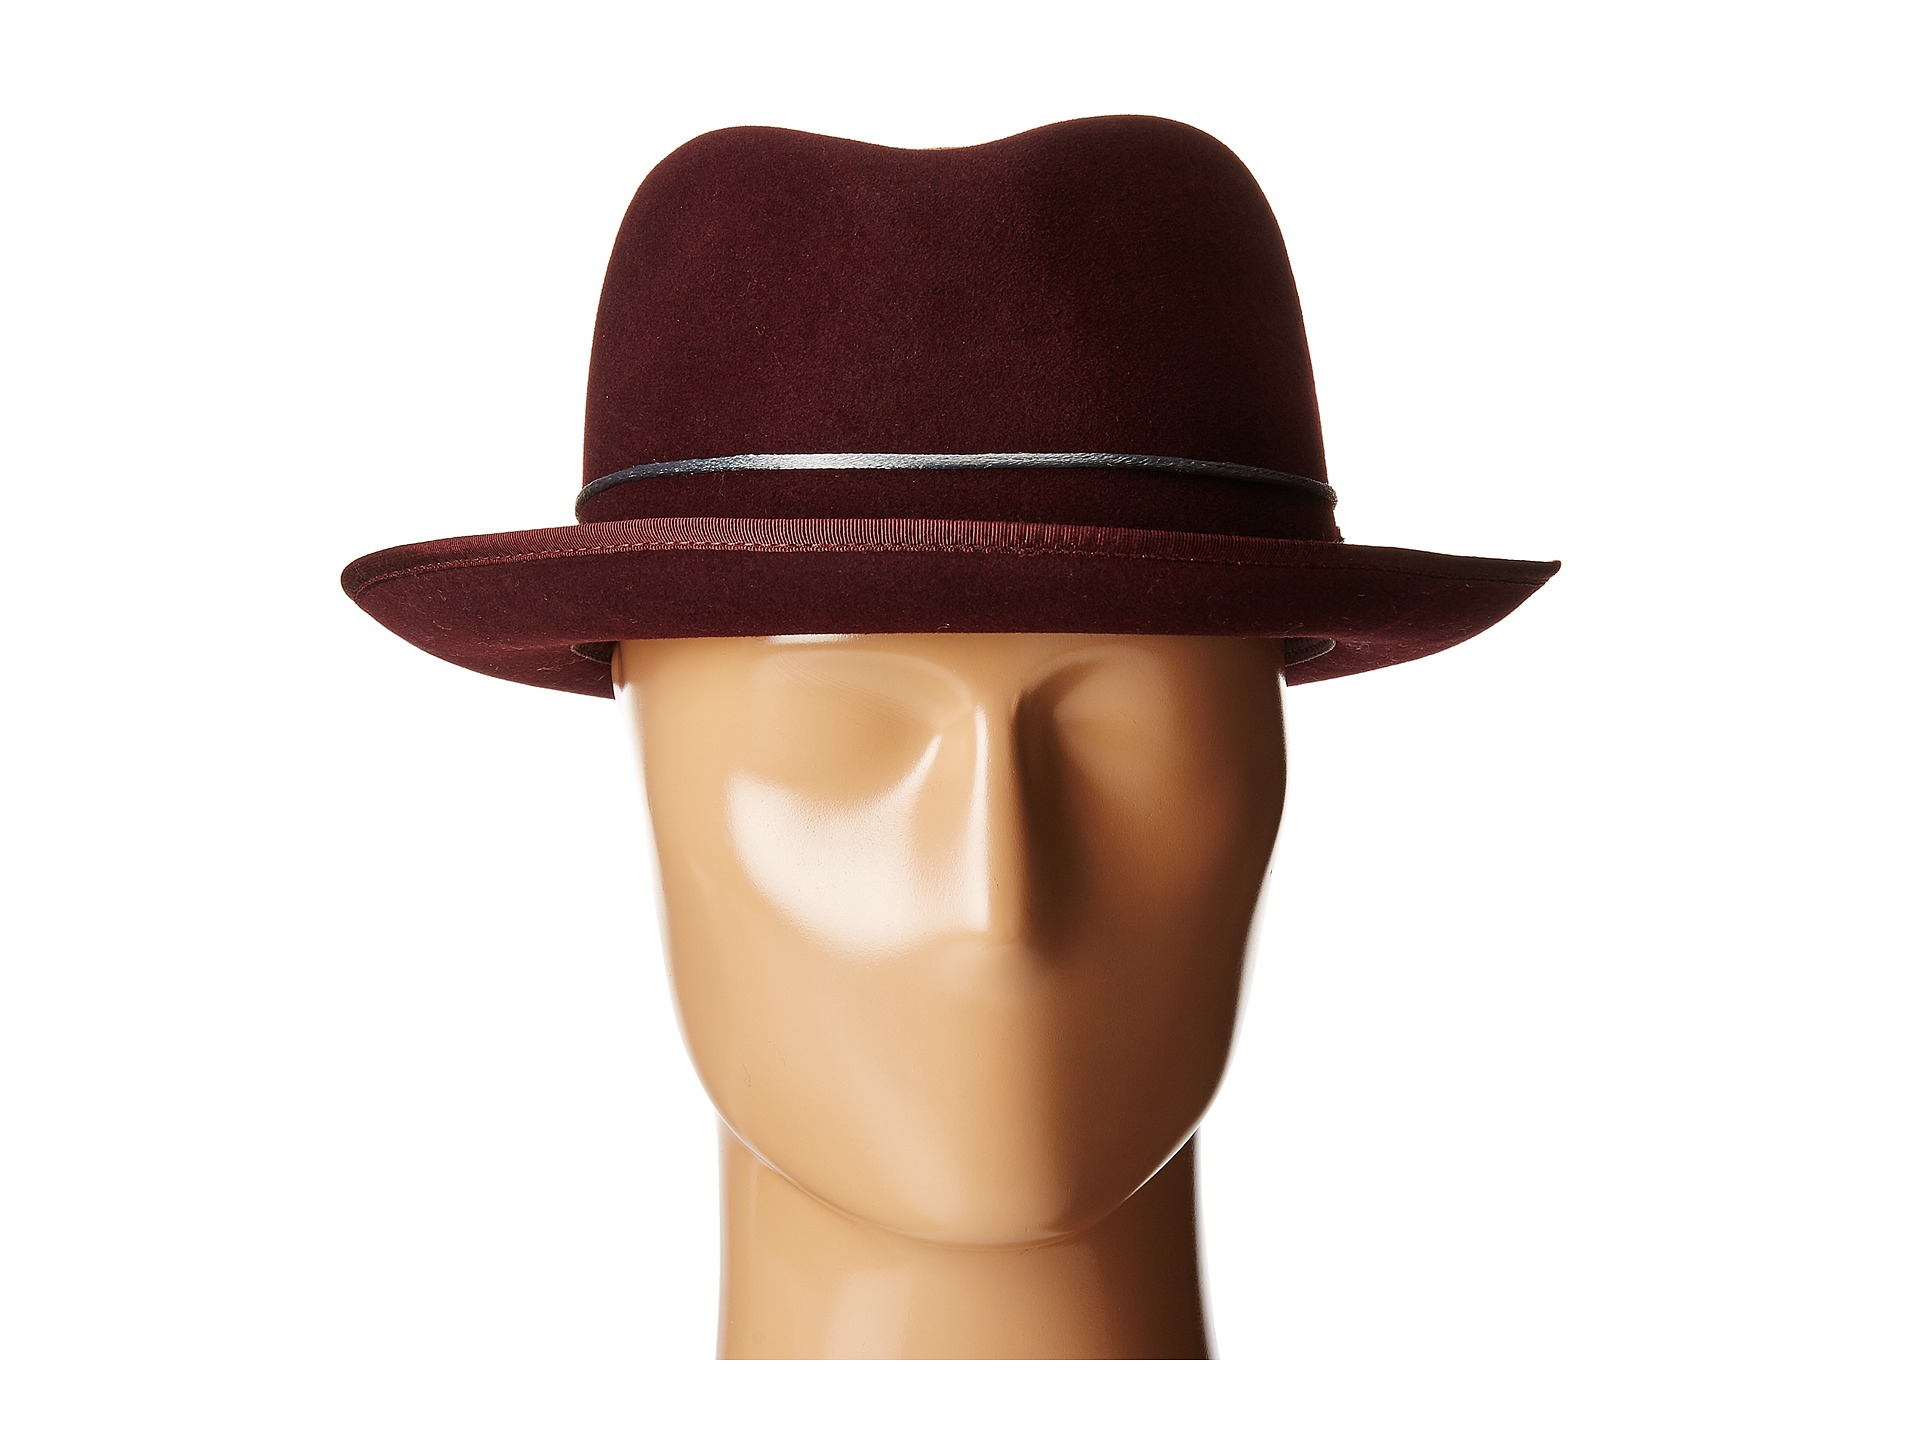 Lyst - Kangol Corded Hiro Trilby in Purple for Men e30a27810477